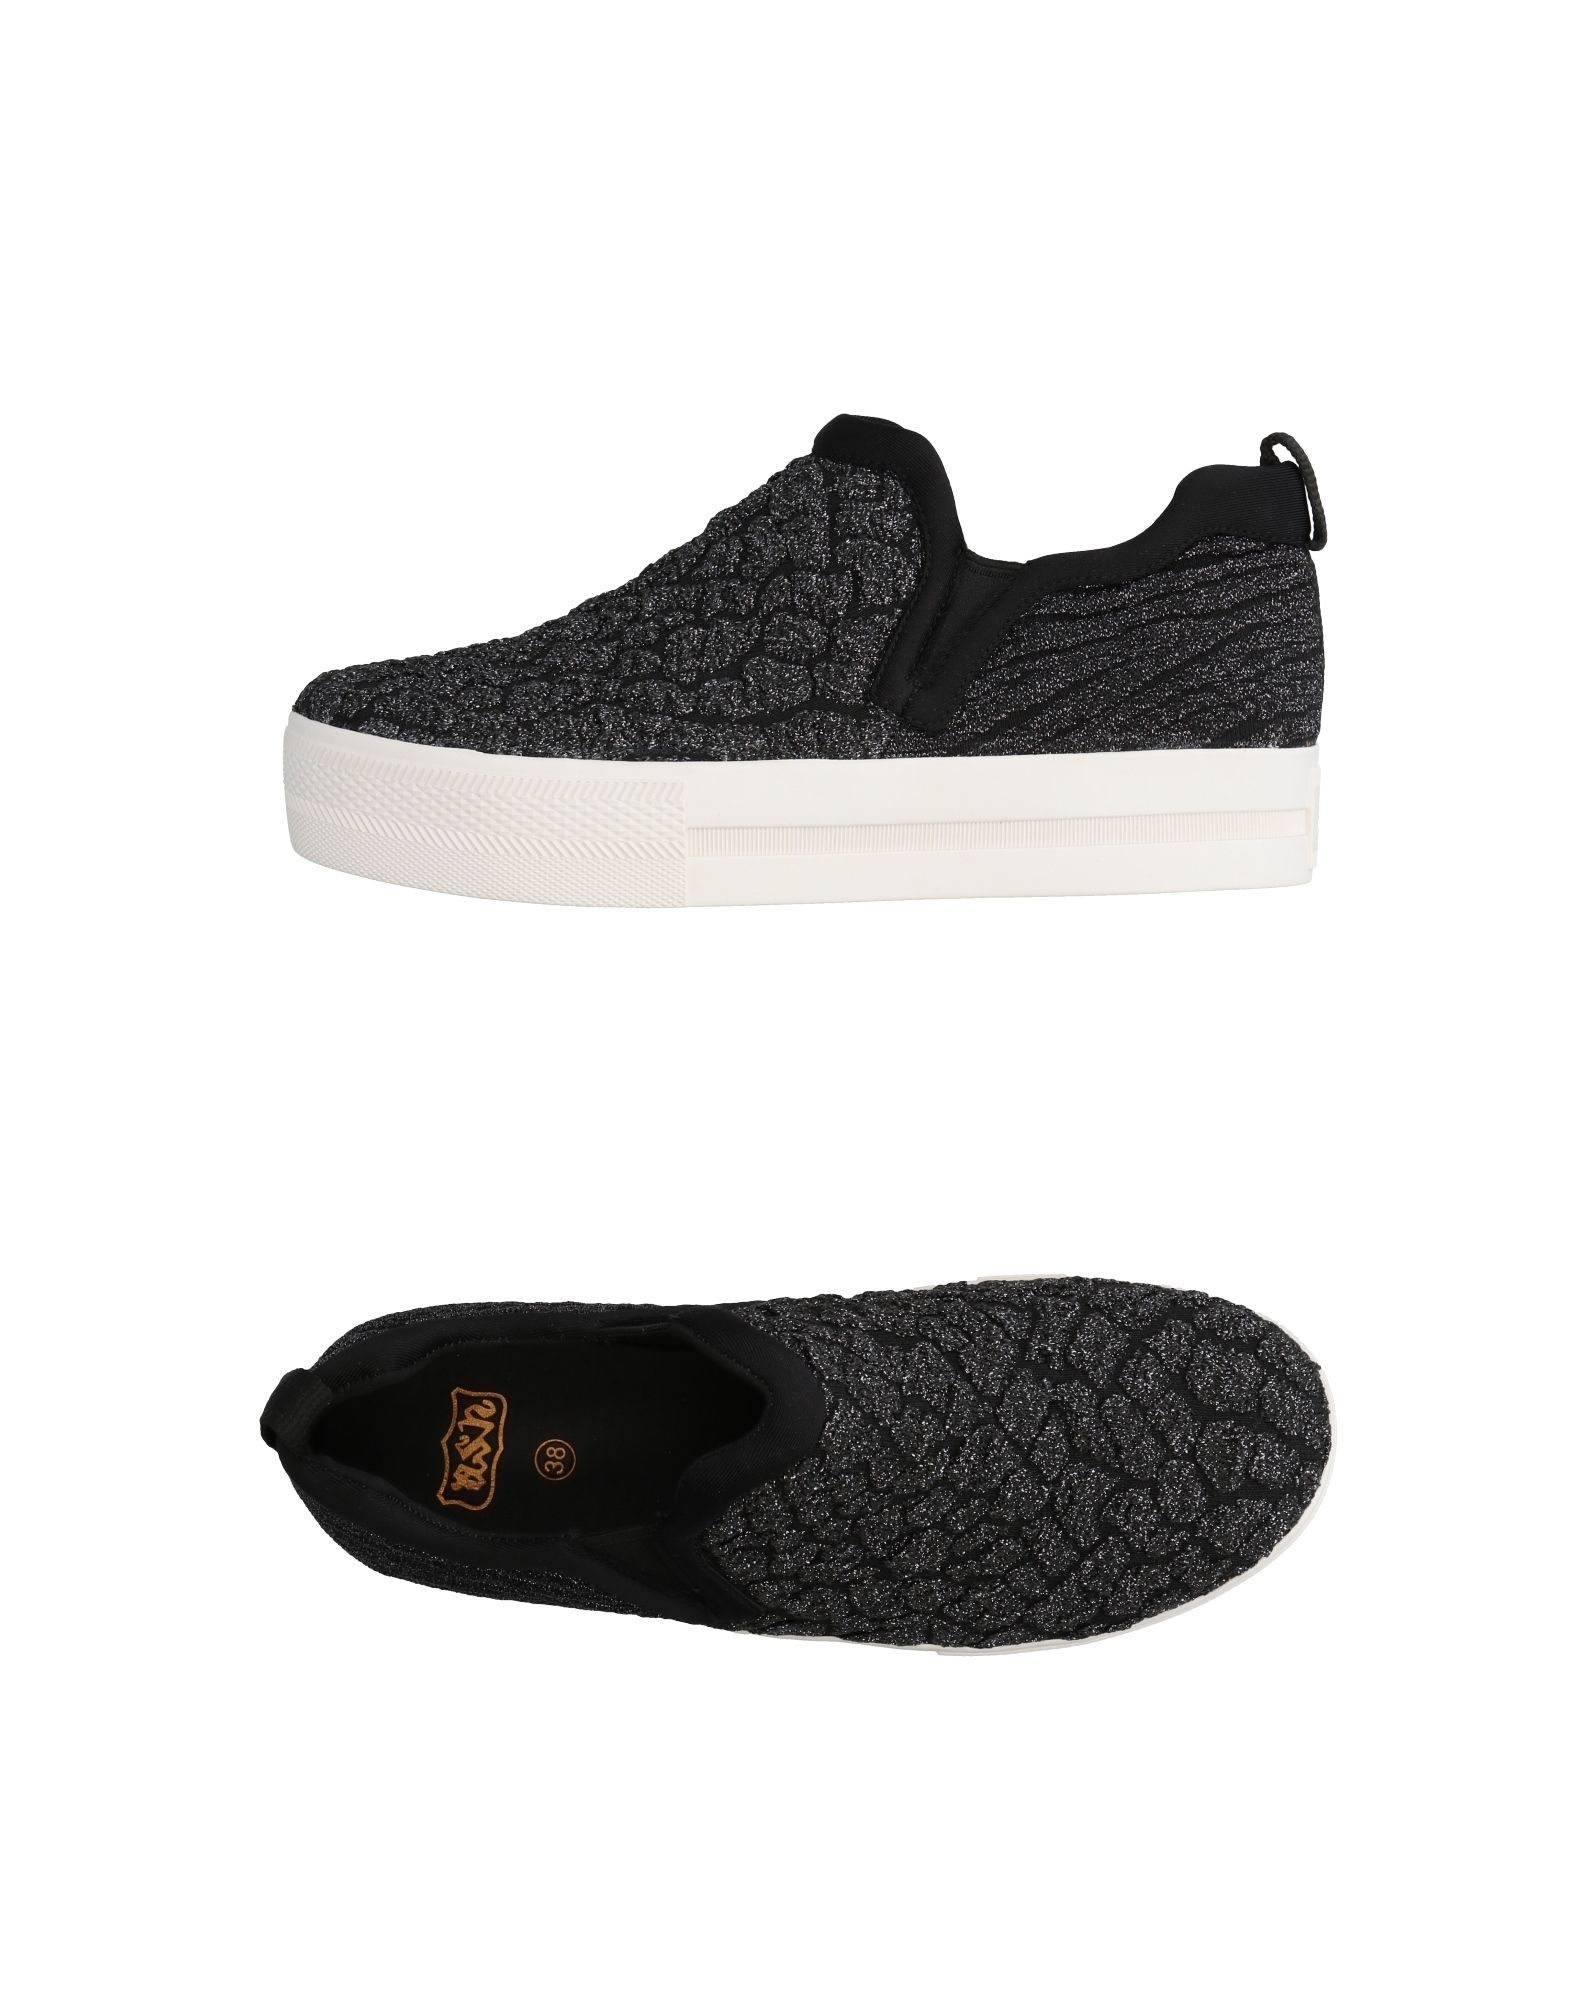 Ash on Sneakers - Women Ash Sneakers online on Ash  Australia - 11233664HT 7c30ba